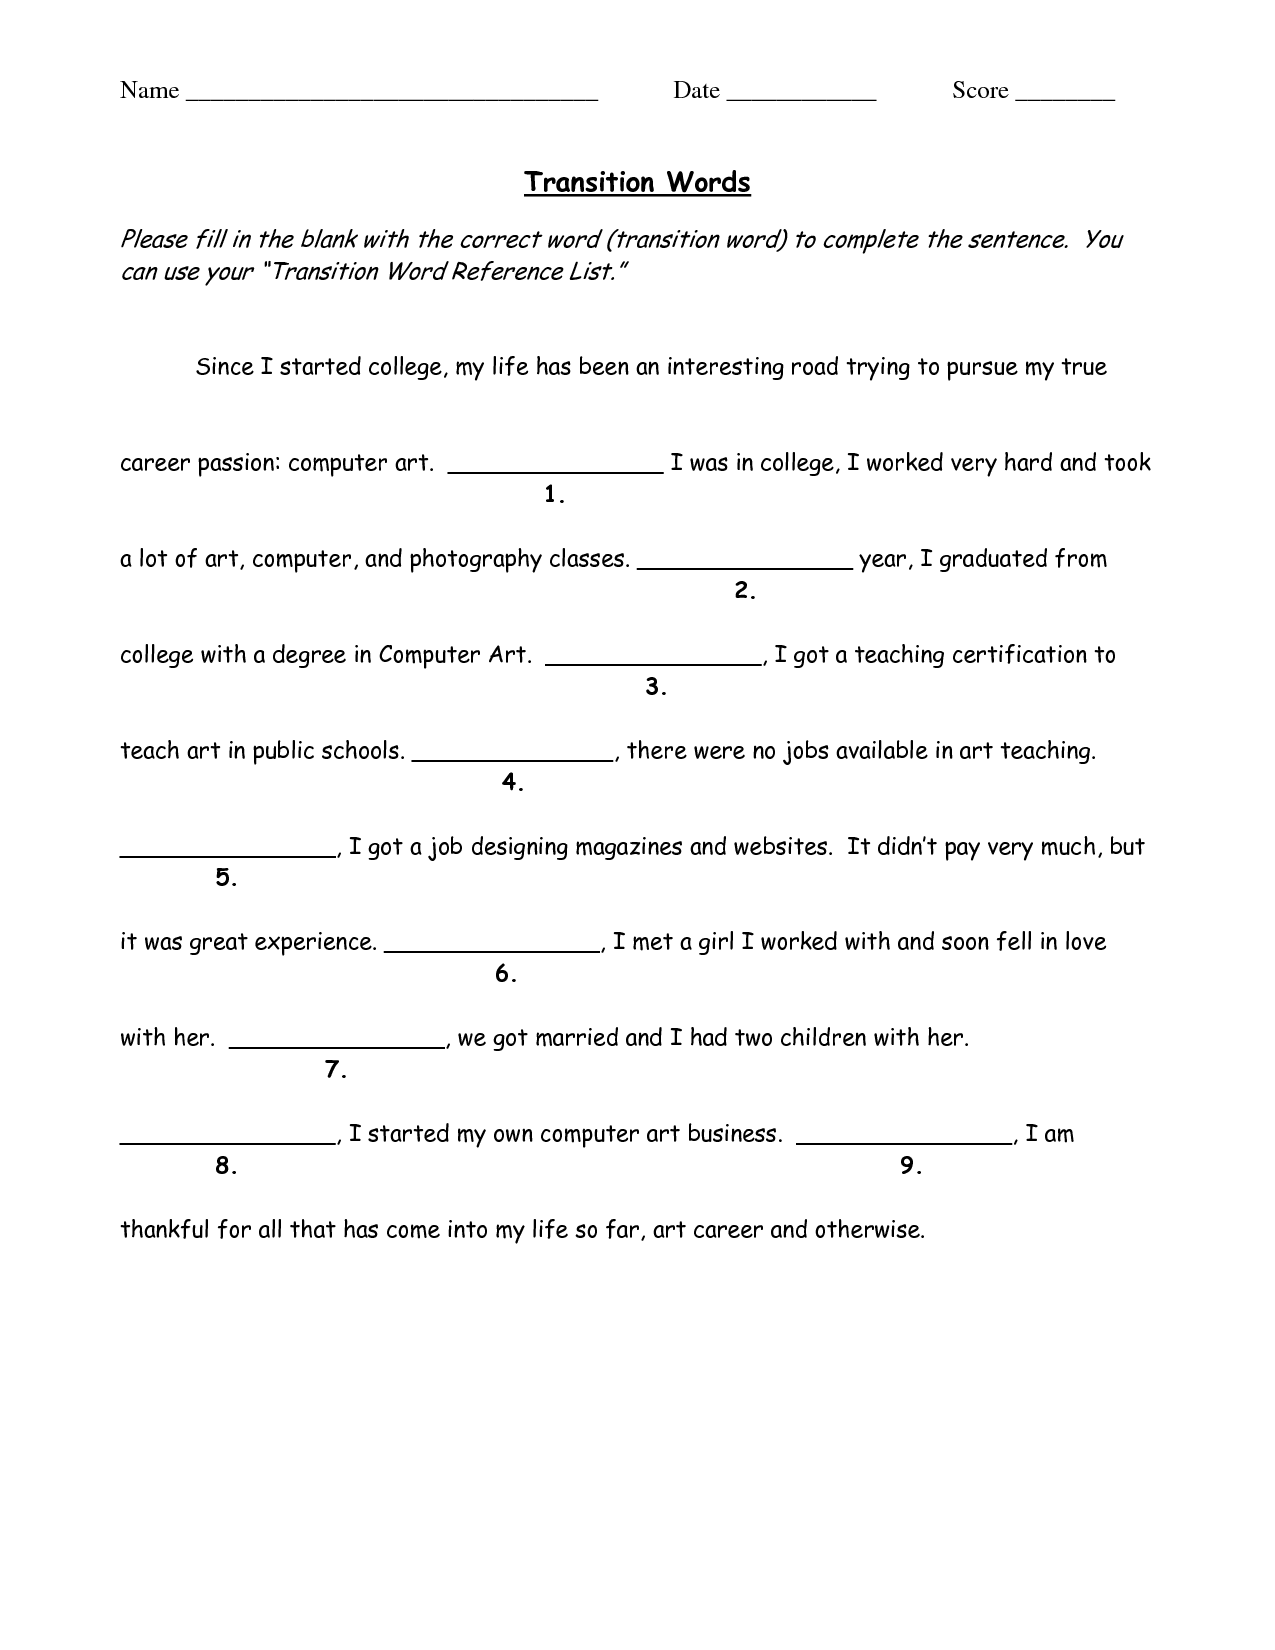 Transition Words Worksheet Middle School